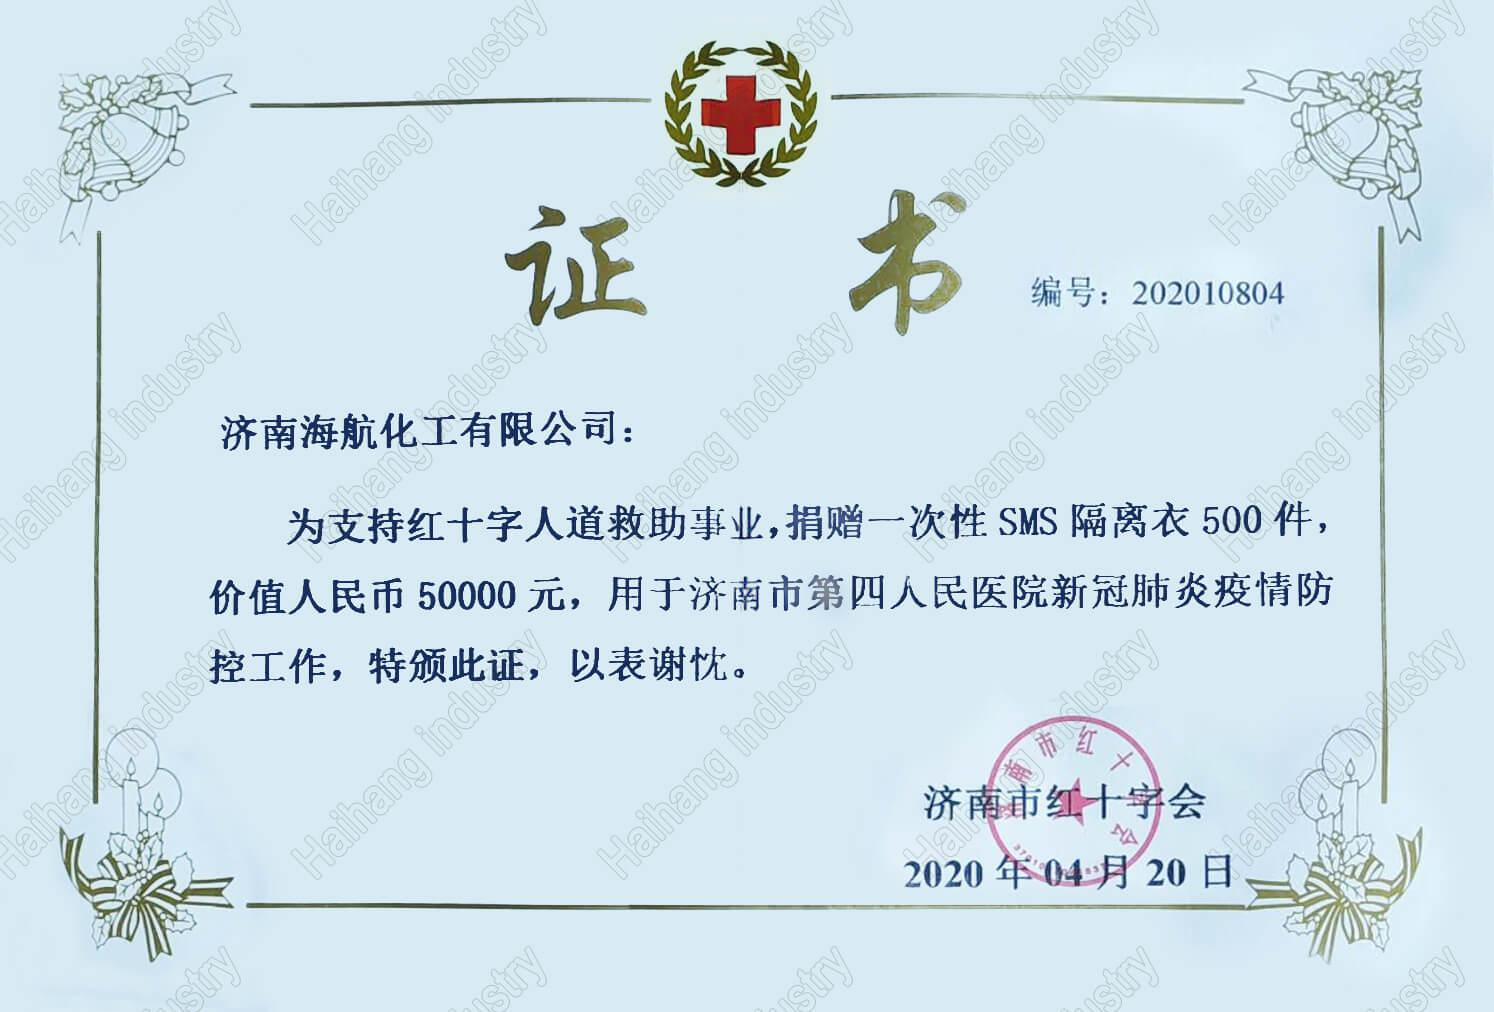 Jinan Red Cross Humane Rescue Commendation